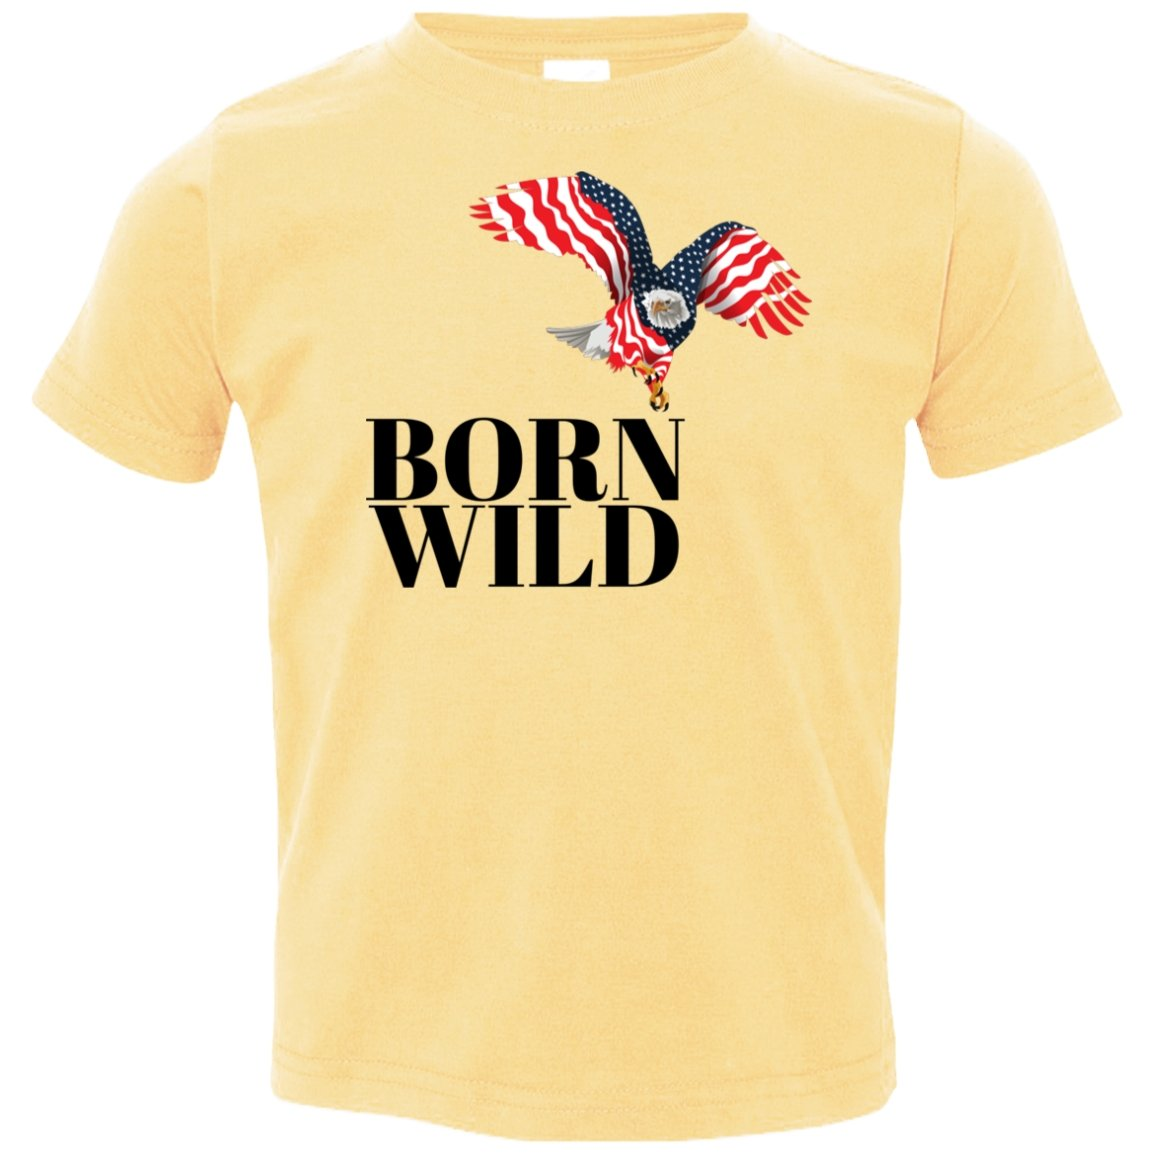 "T-Shirts ""Born Wild"" Short Sleeve T-Shirt - 6 colors - ZERO TO THREE CLUB T-Shirts"